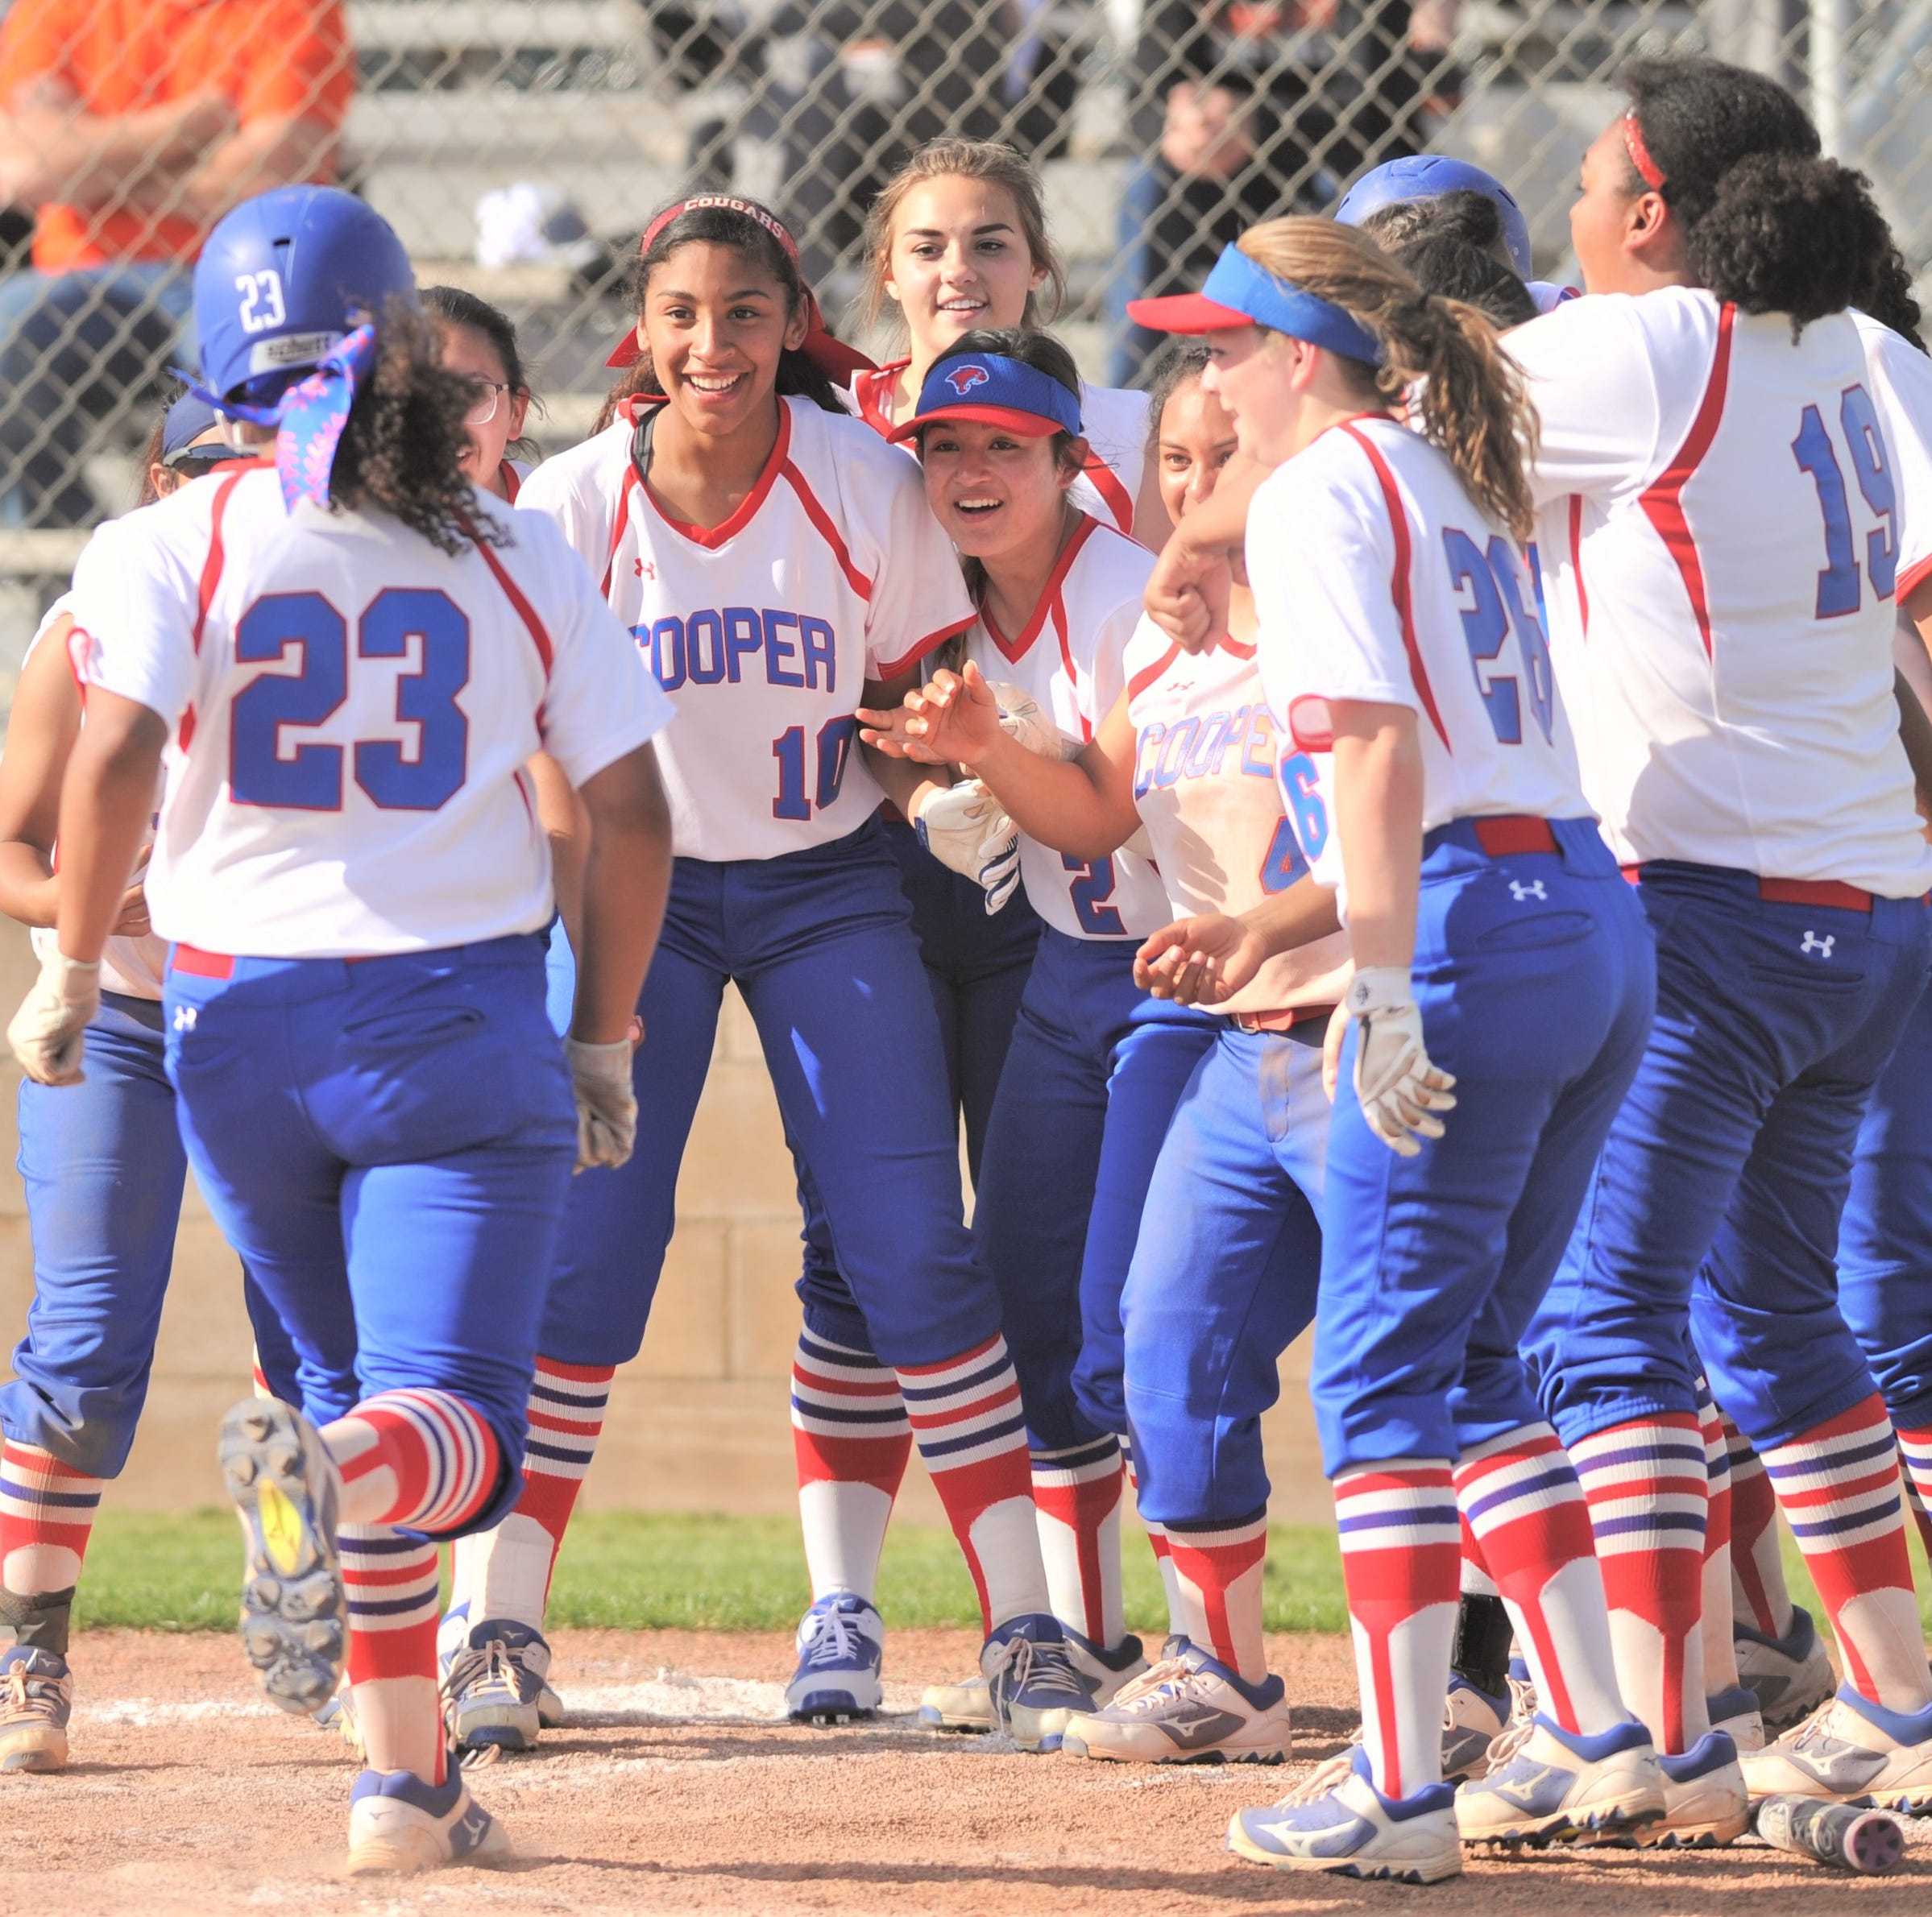 Willis lifts Abilene Cooper over Aledo in 7th to remain unbeaten in district softball play